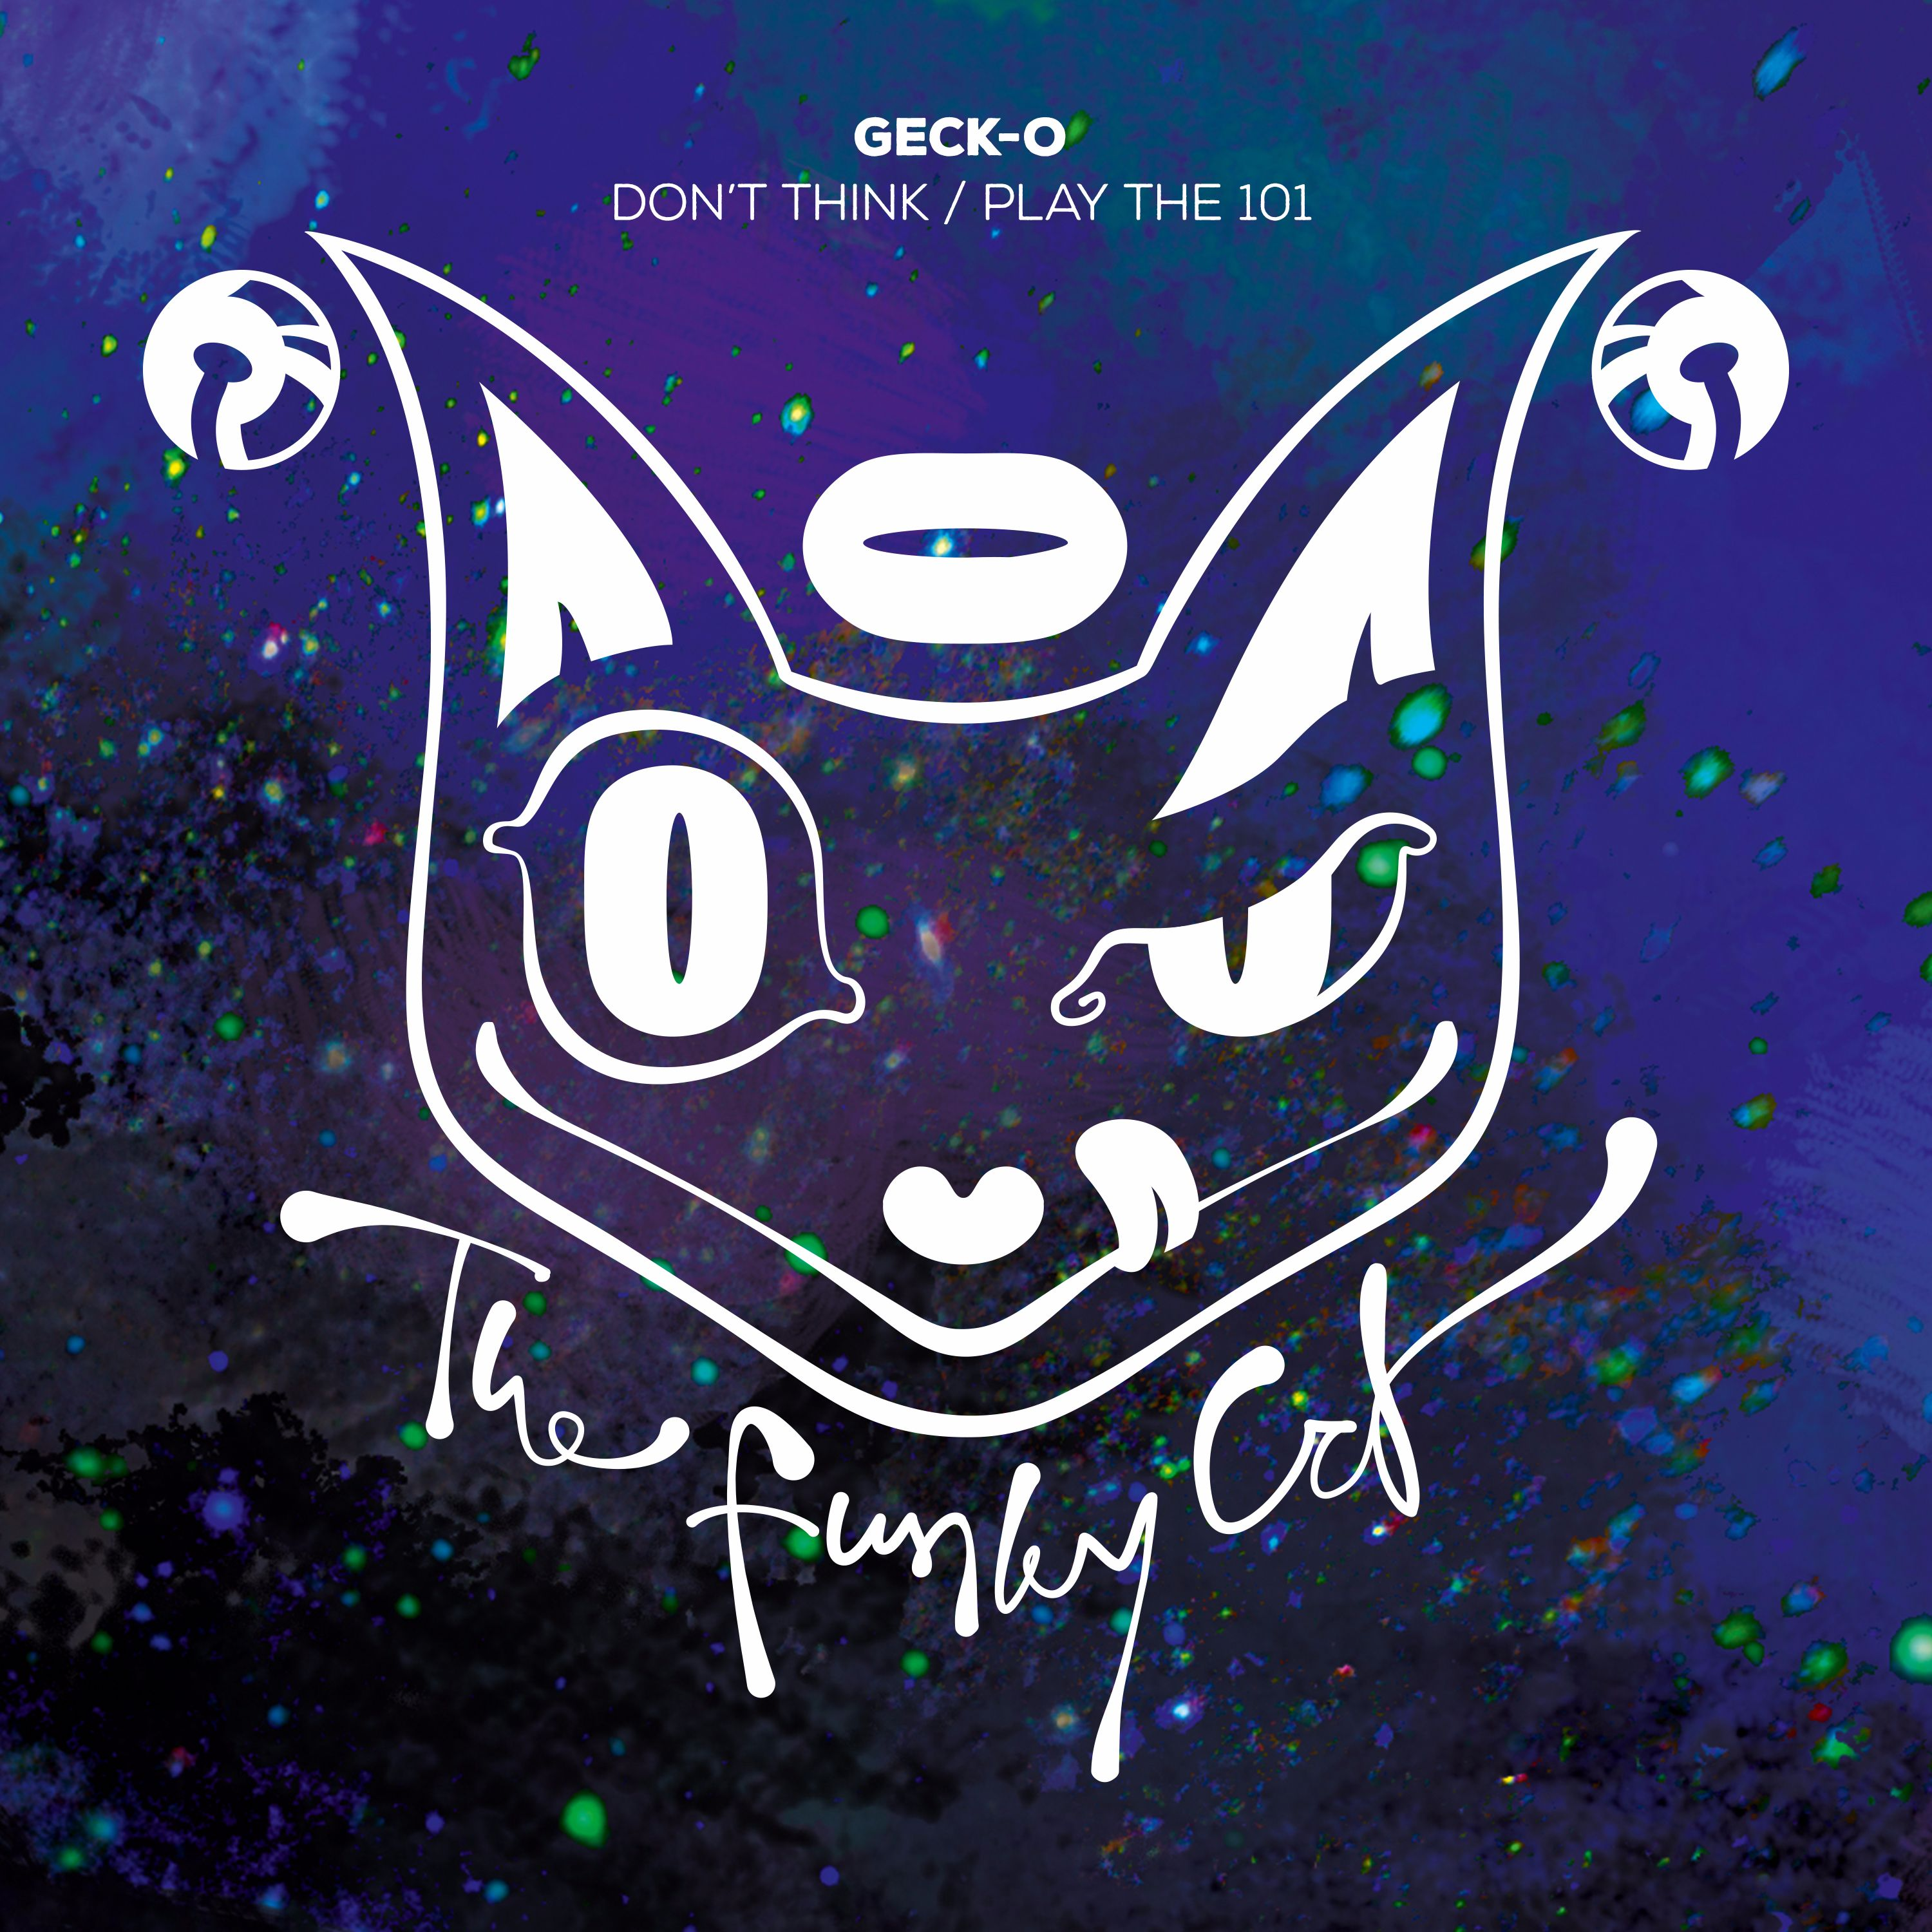 Geck-O - Don't Think/ Play The 101 [THE FUNKY CAT RECORDS] CATID008